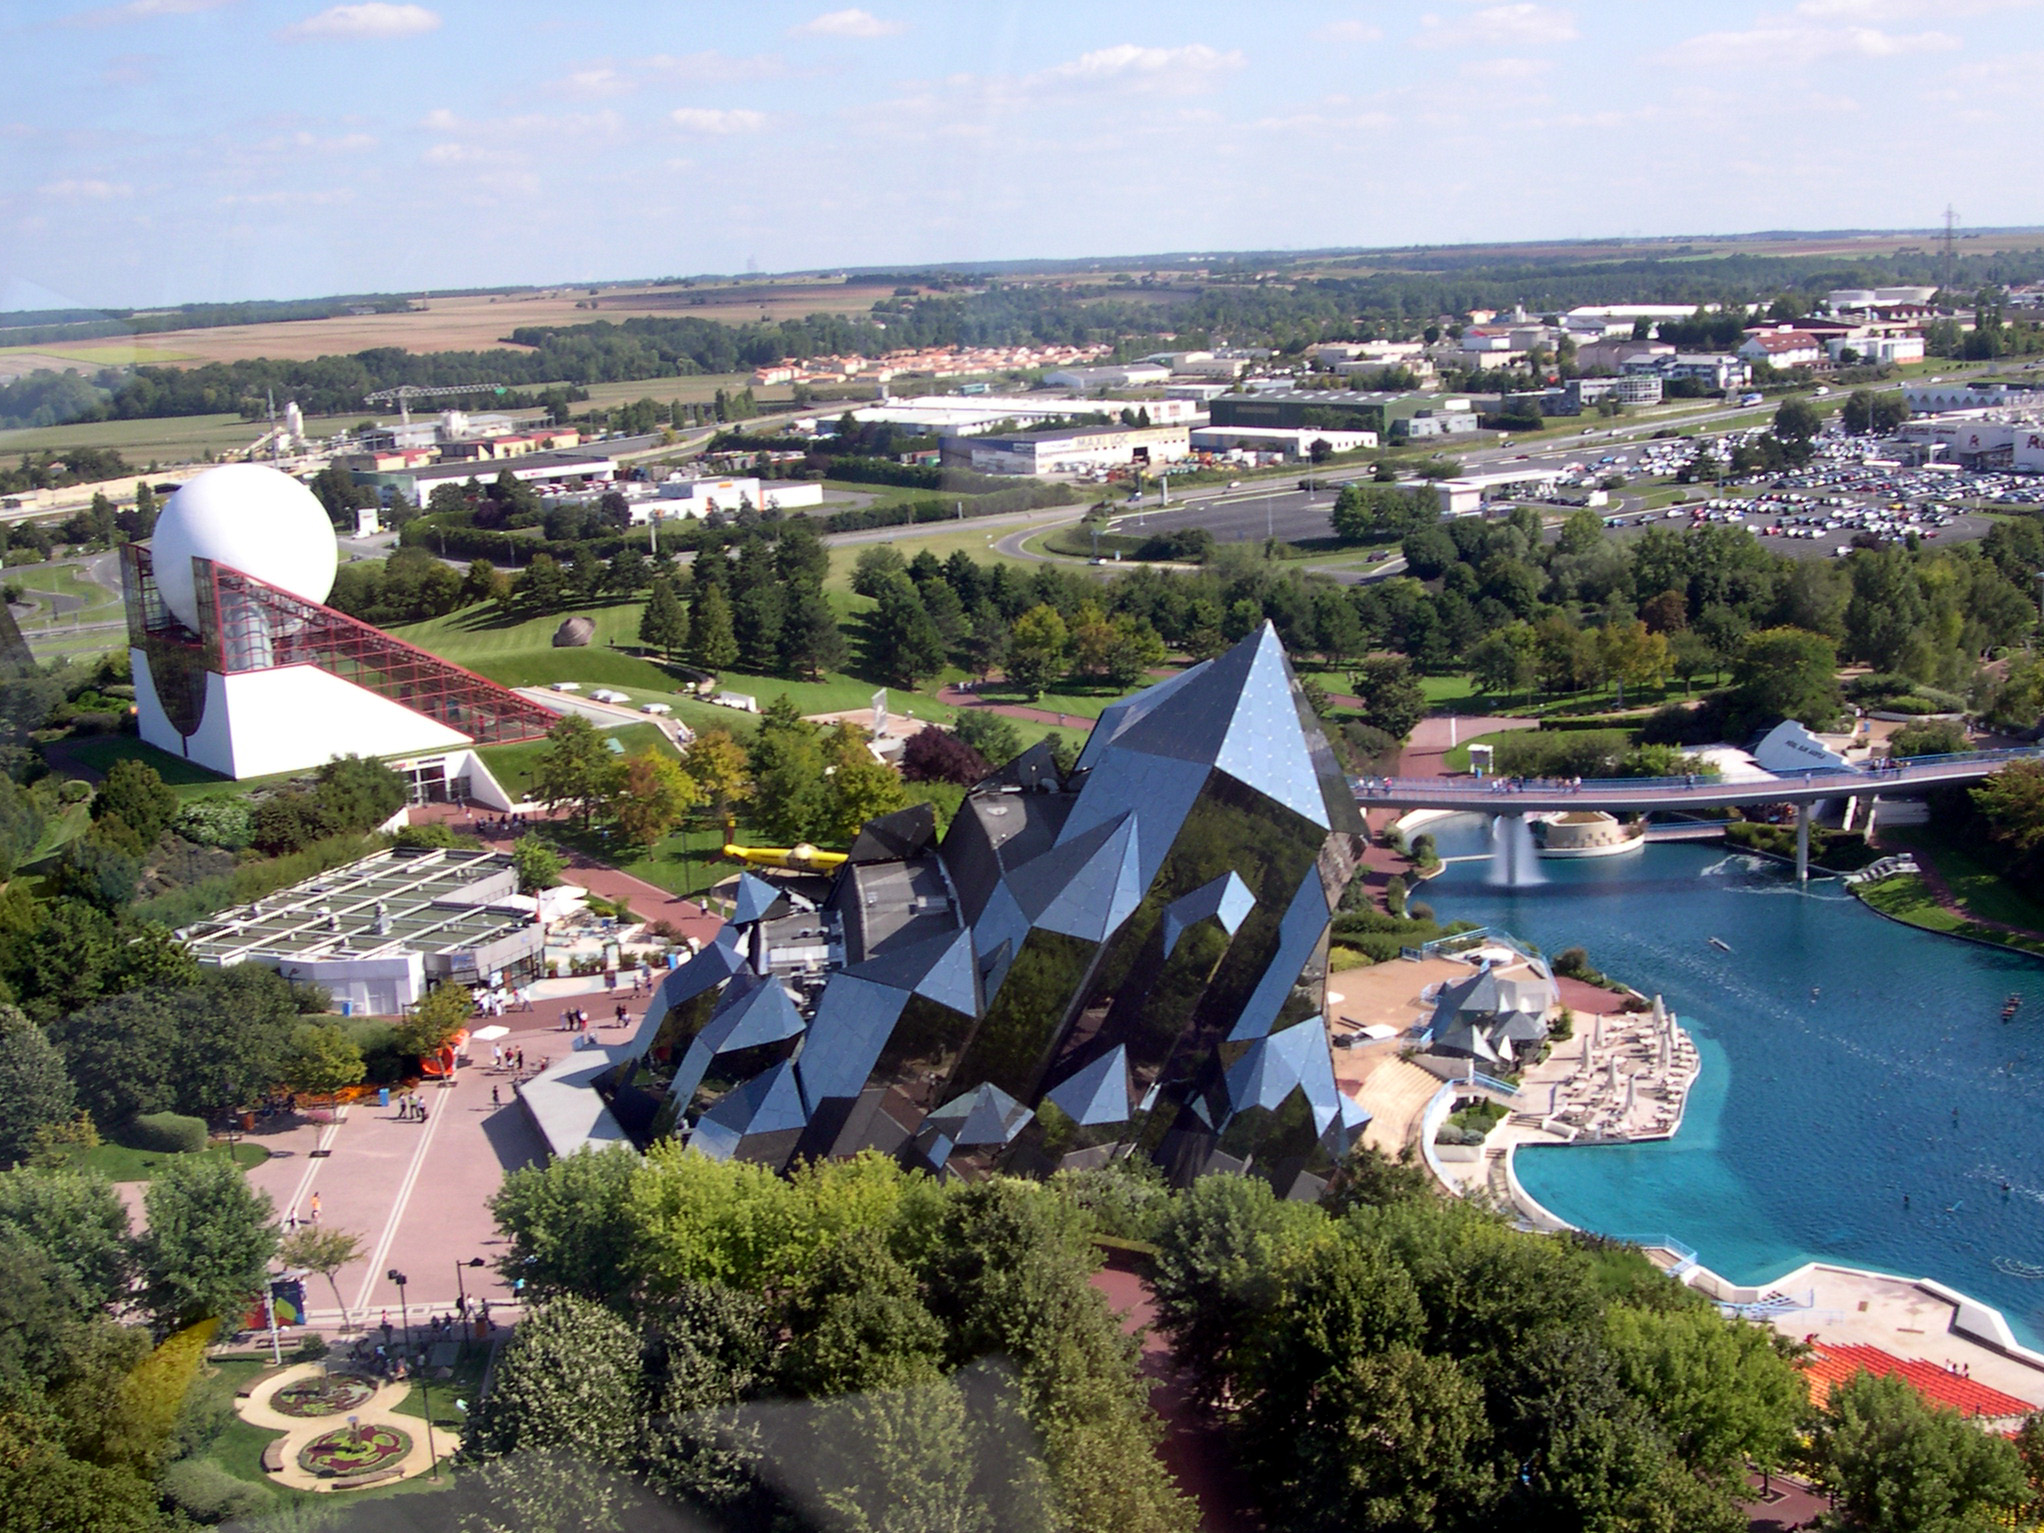 http://upload.wikimedia.org/wikipedia/commons/6/6d/Futuroscope_08-06_-_Vue_d%27en_haut_2.jpg